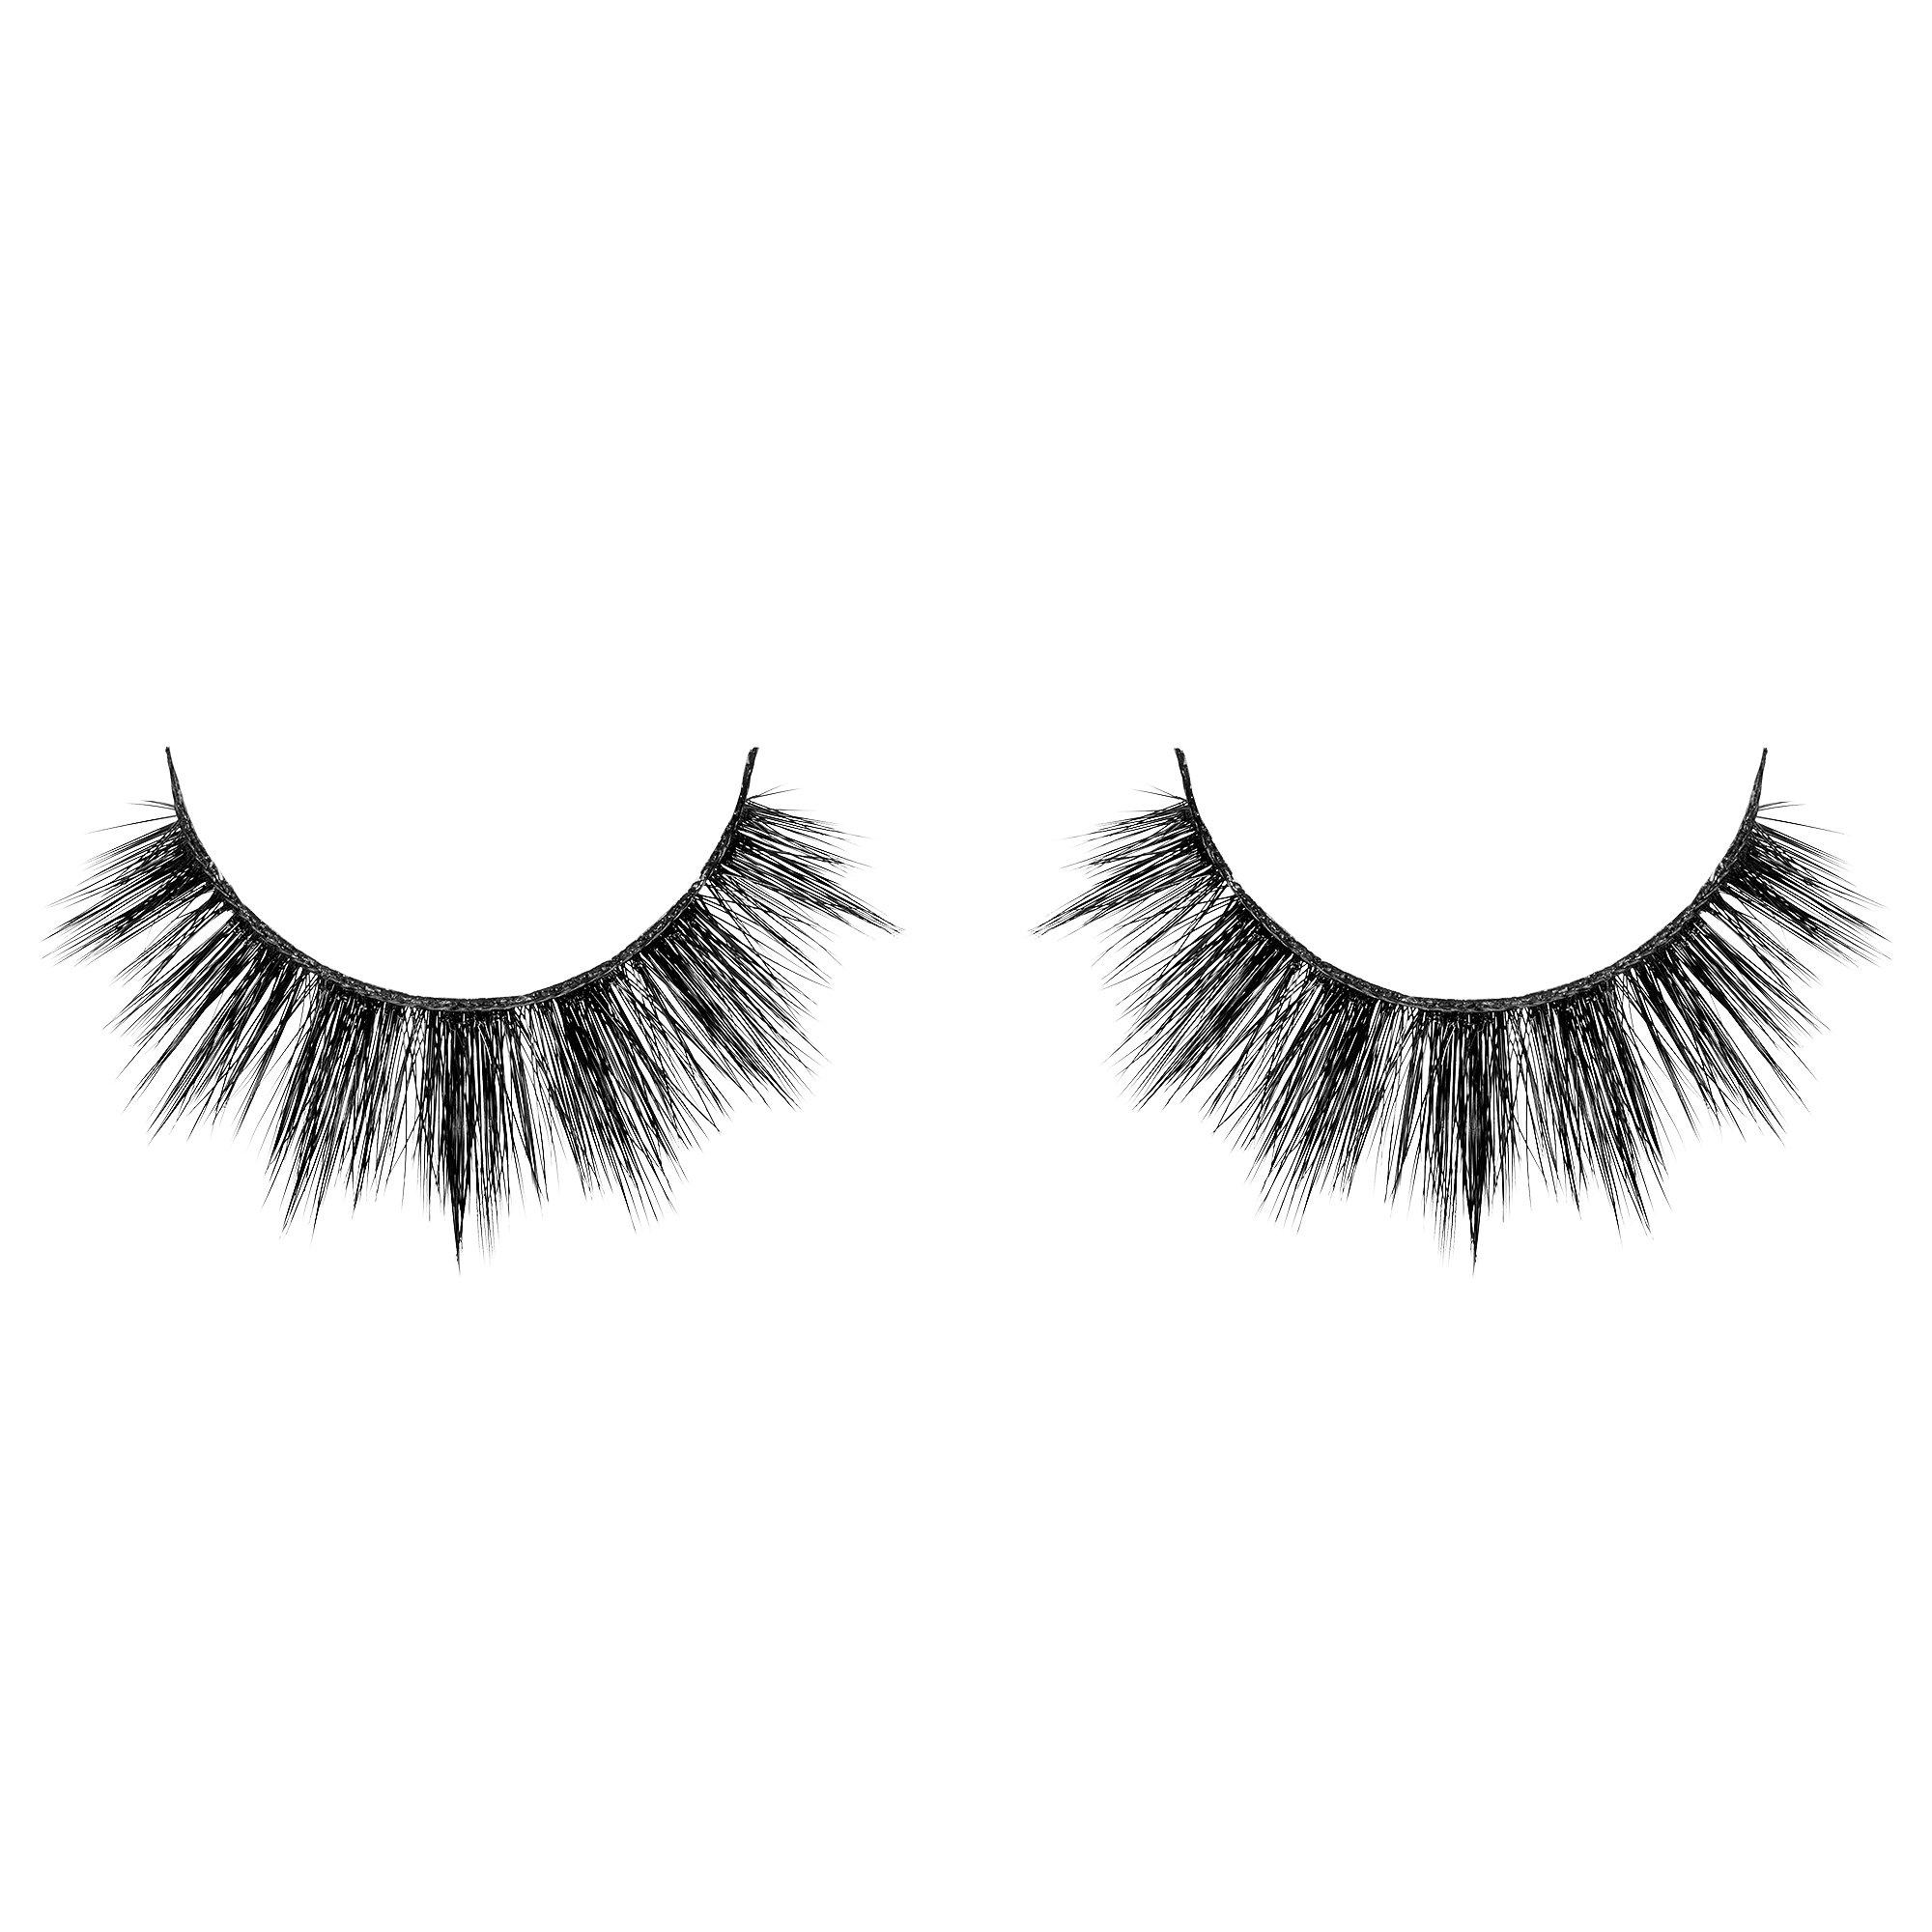 Velour Lashes Fluff'n Dolled Up Fluff'n Thick Silk Lash Collection